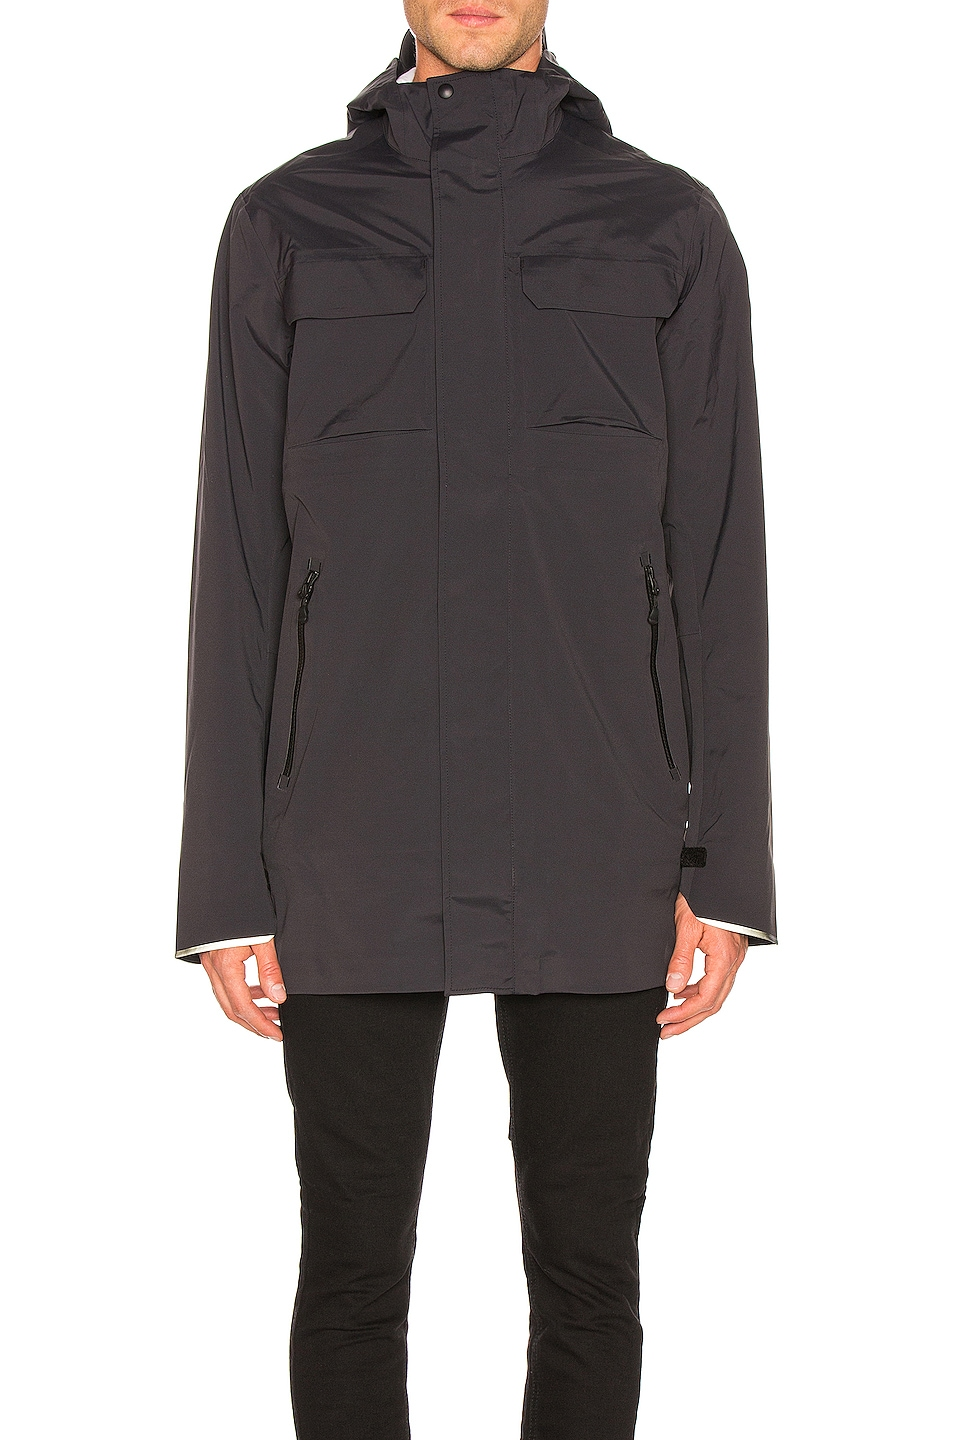 Image 2 of Canada Goose Wascana Jacket in Black